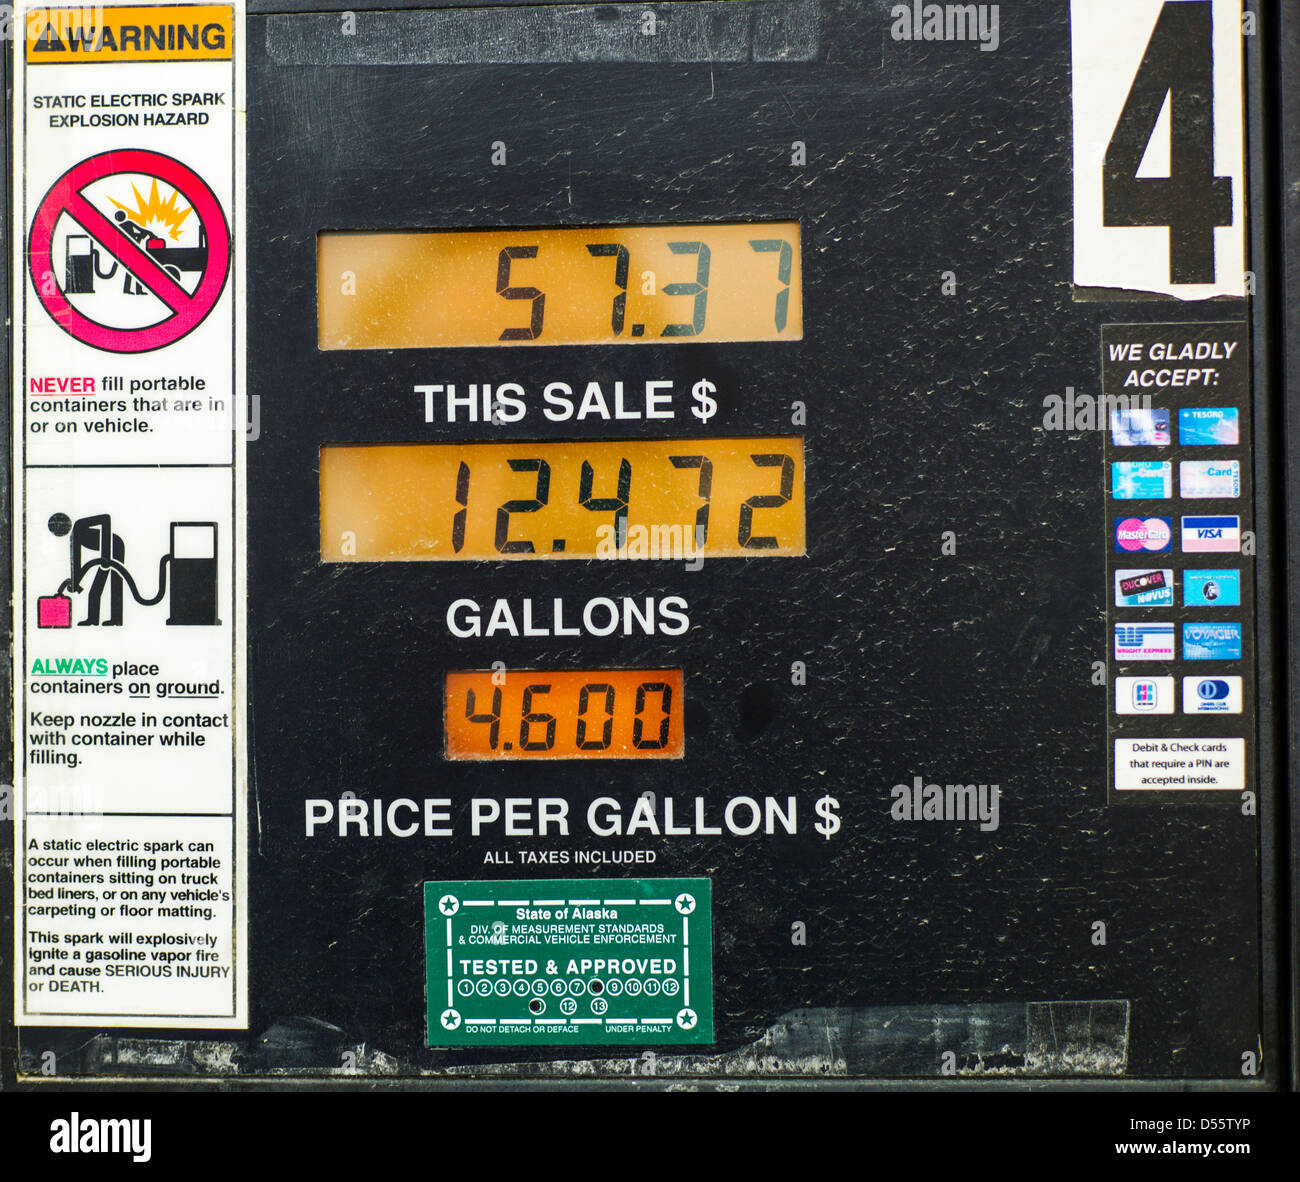 Automotive gasoline $4.60 per gallon just outside Denali National Park, Alaska, USA - Stock Image